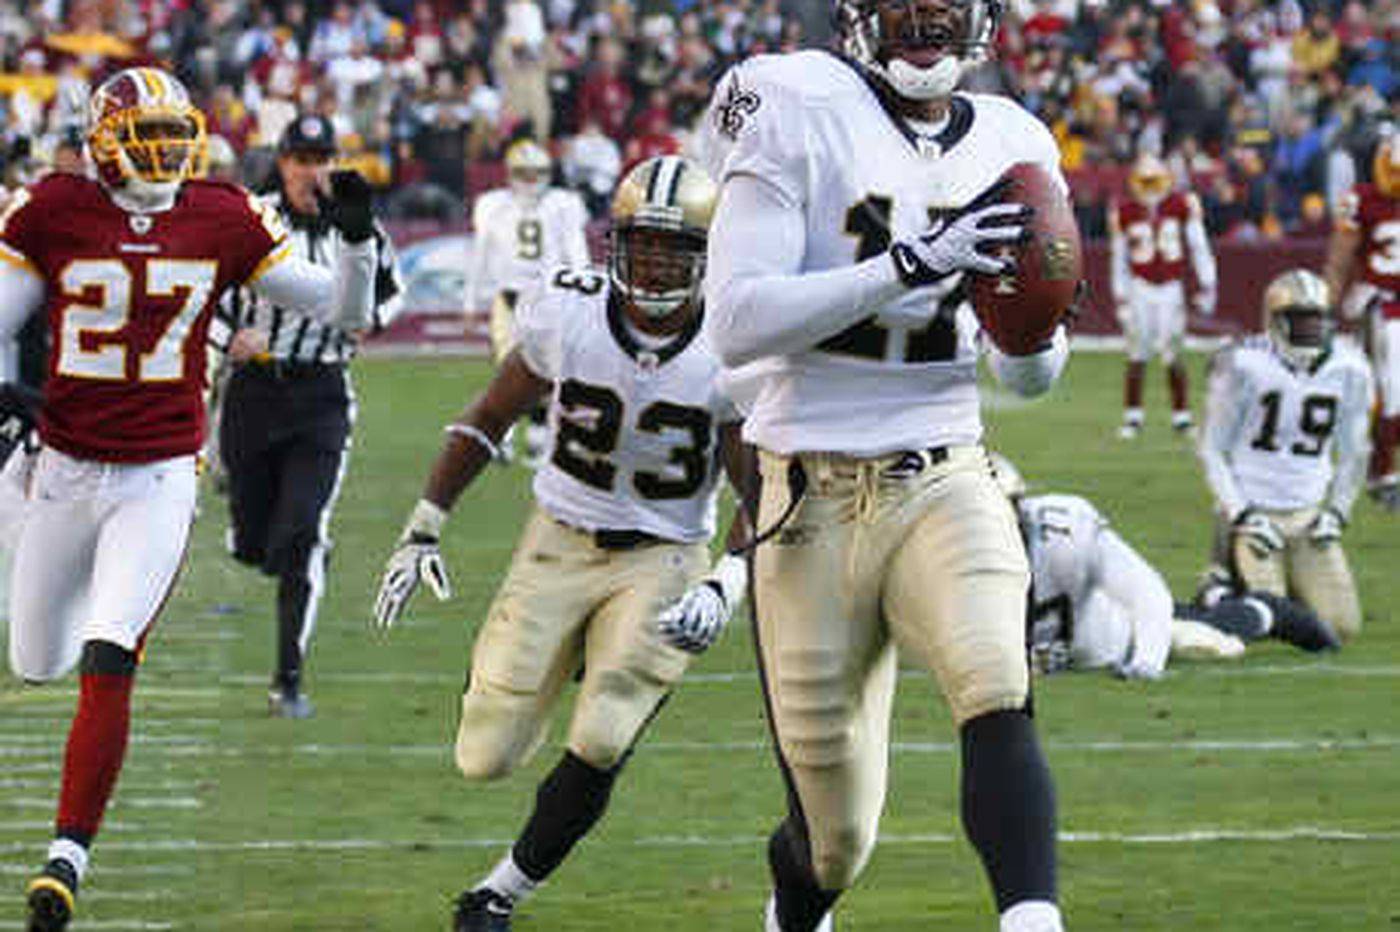 Saints put the voodoo on Redskins for a win